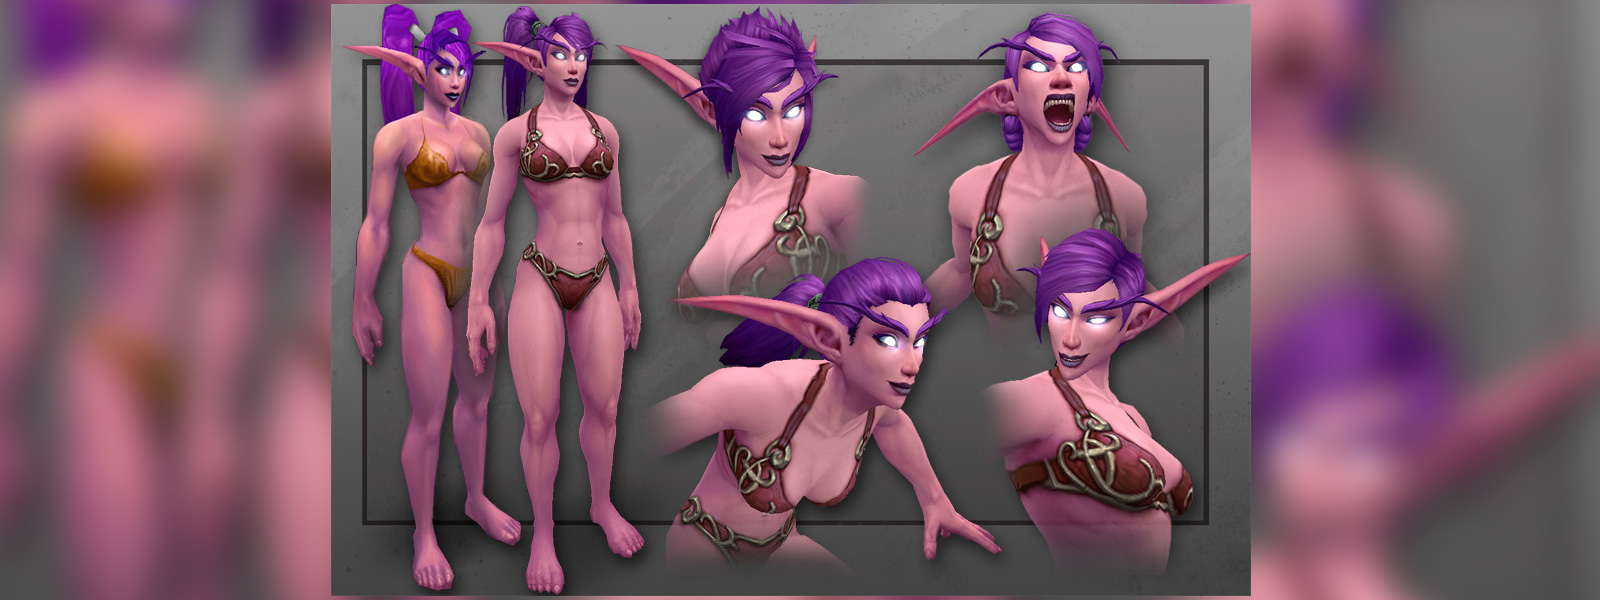 Nightelf futa naked galleries